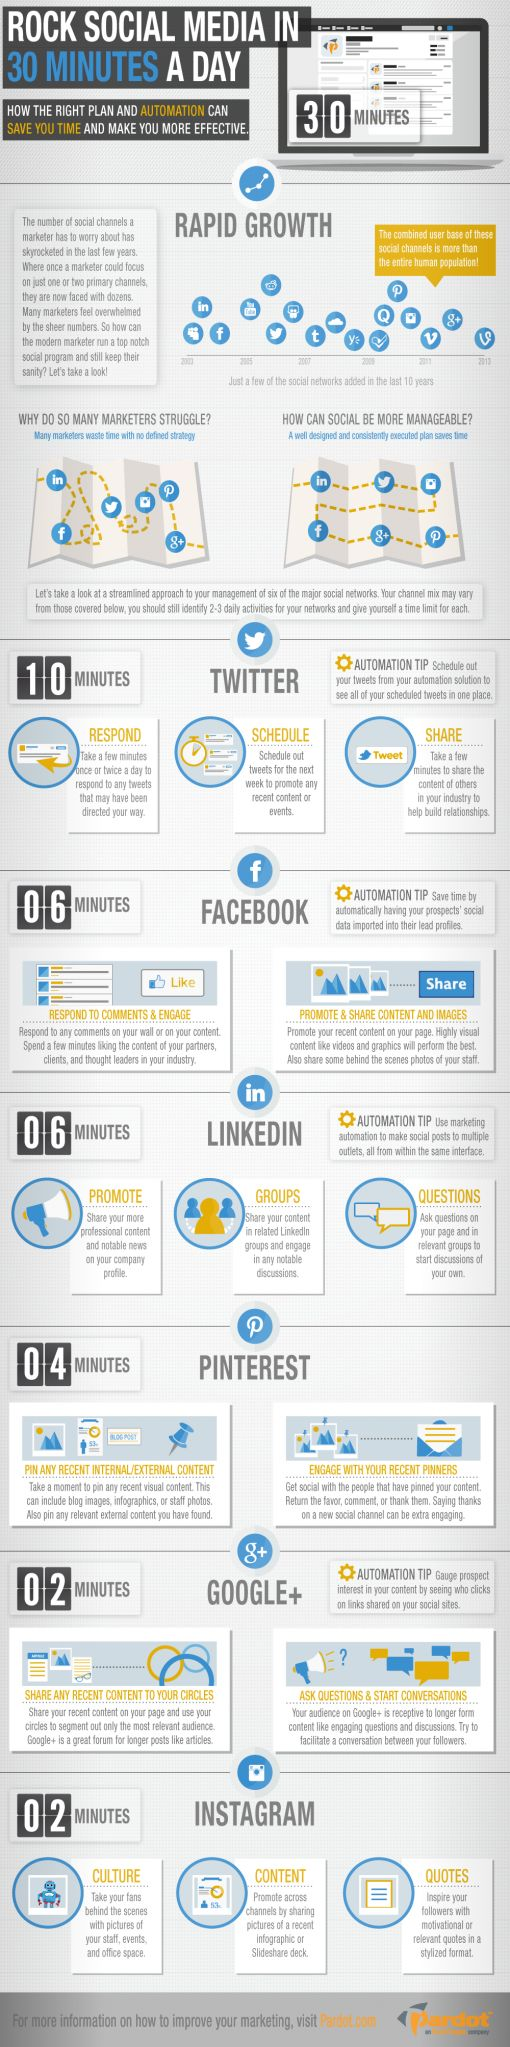 30_minute_social__media_infographic